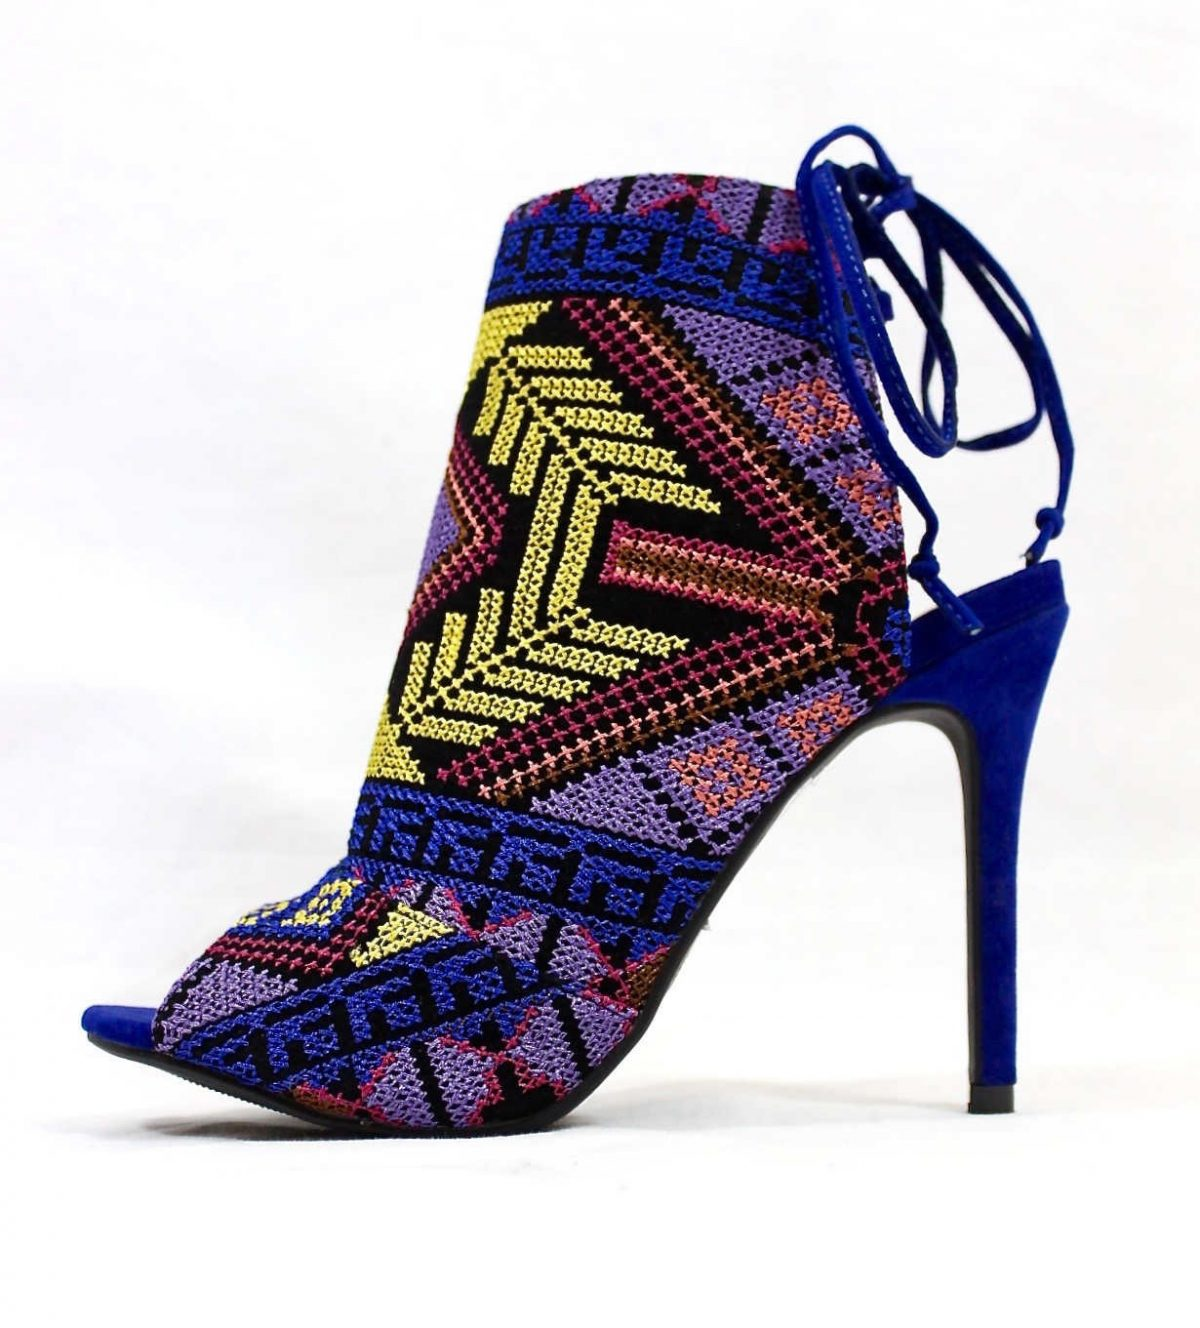 Shoe Republic Calista embroidered Stiletto Open Toe High Blue Booties-0